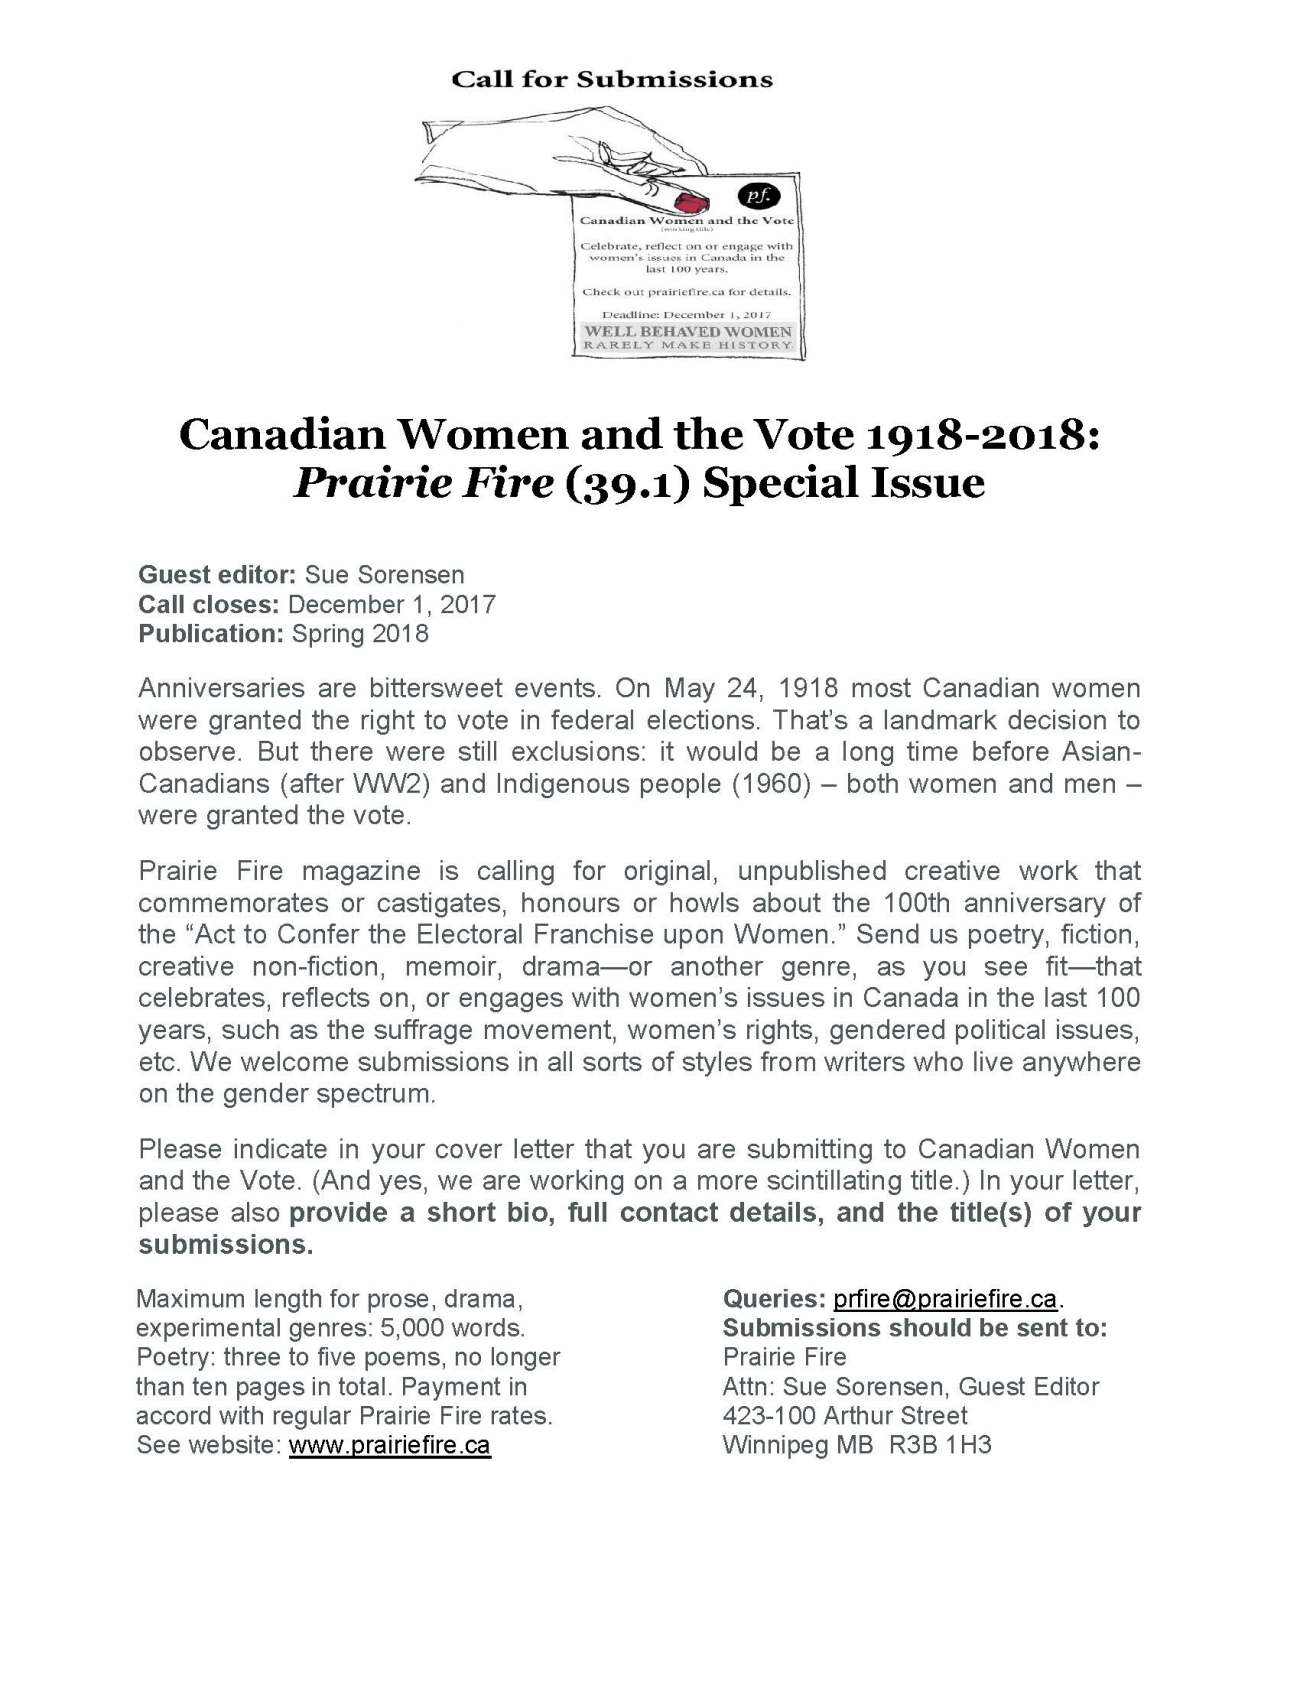 Call for Submissions PF Canadian Women and the Vote (1)